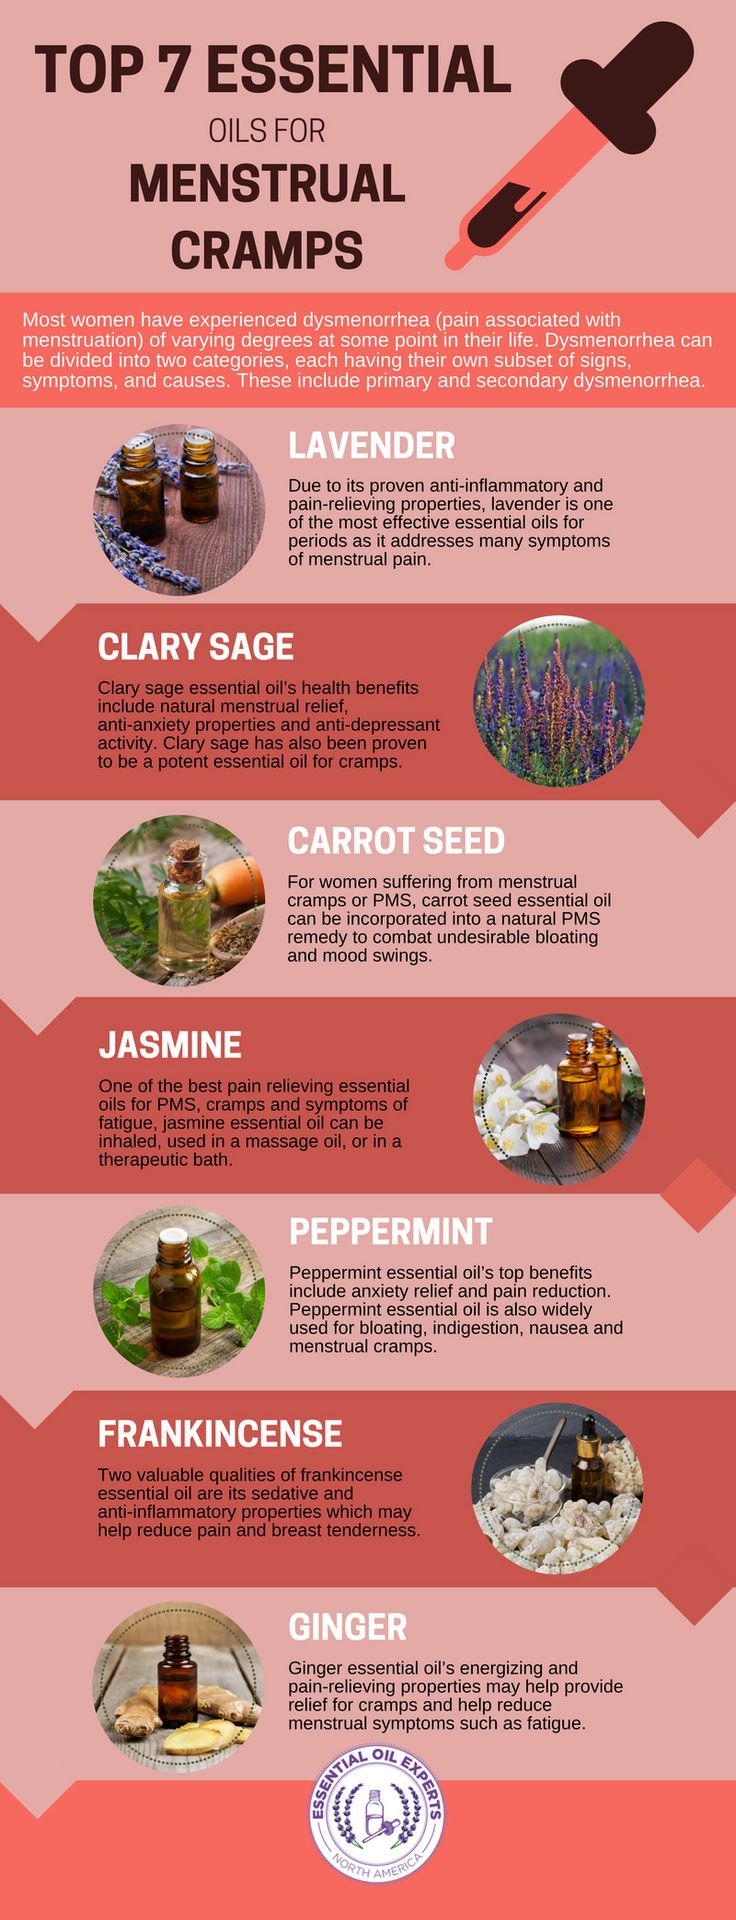 The Top 7 Essential Oils for Menstrual Cramps